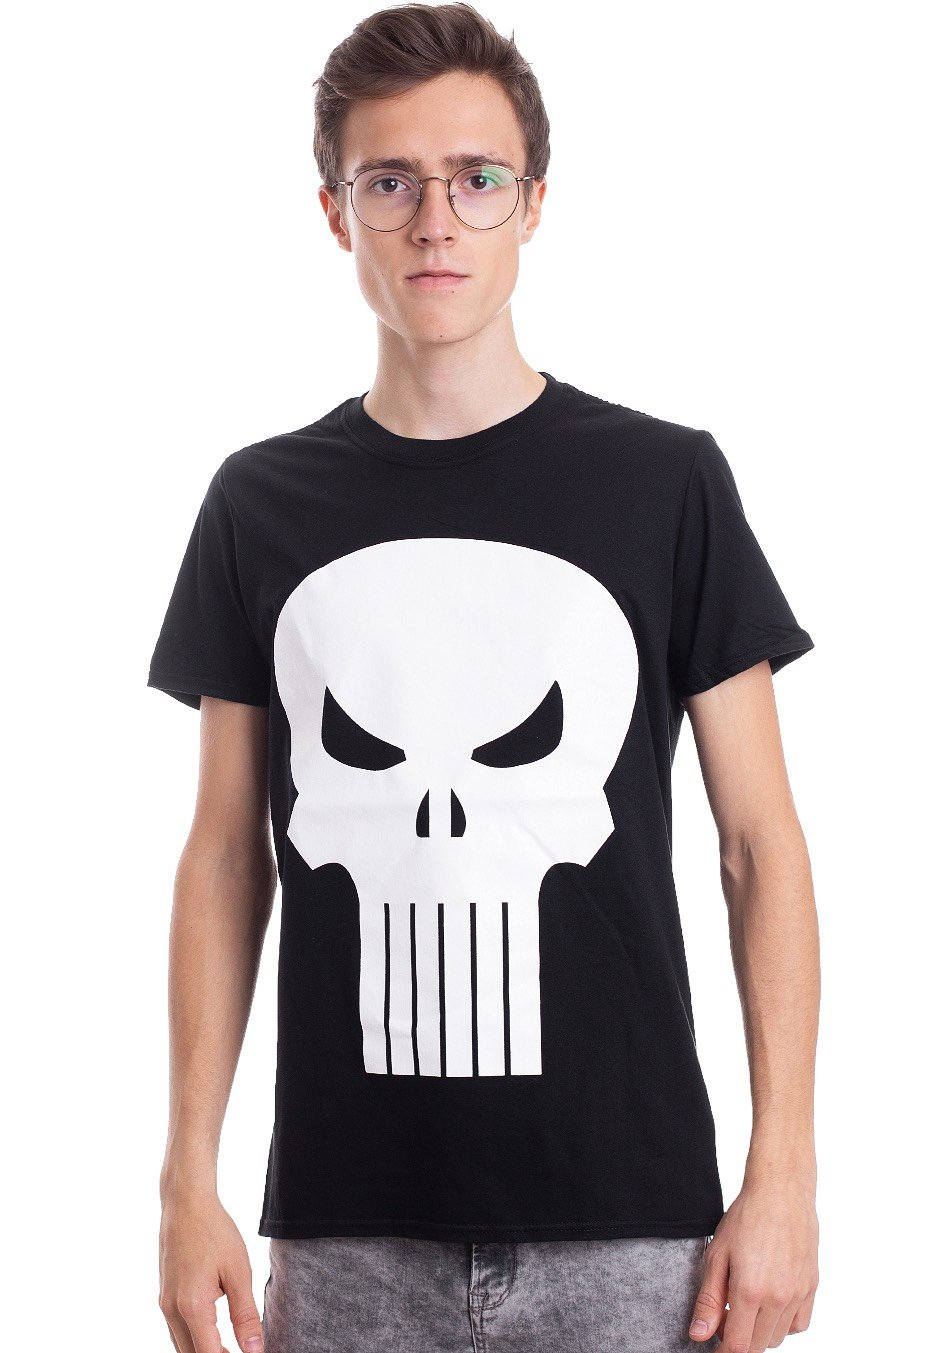 433d7957a The Punisher - Skull - T-Shirt - Impericon.com UK